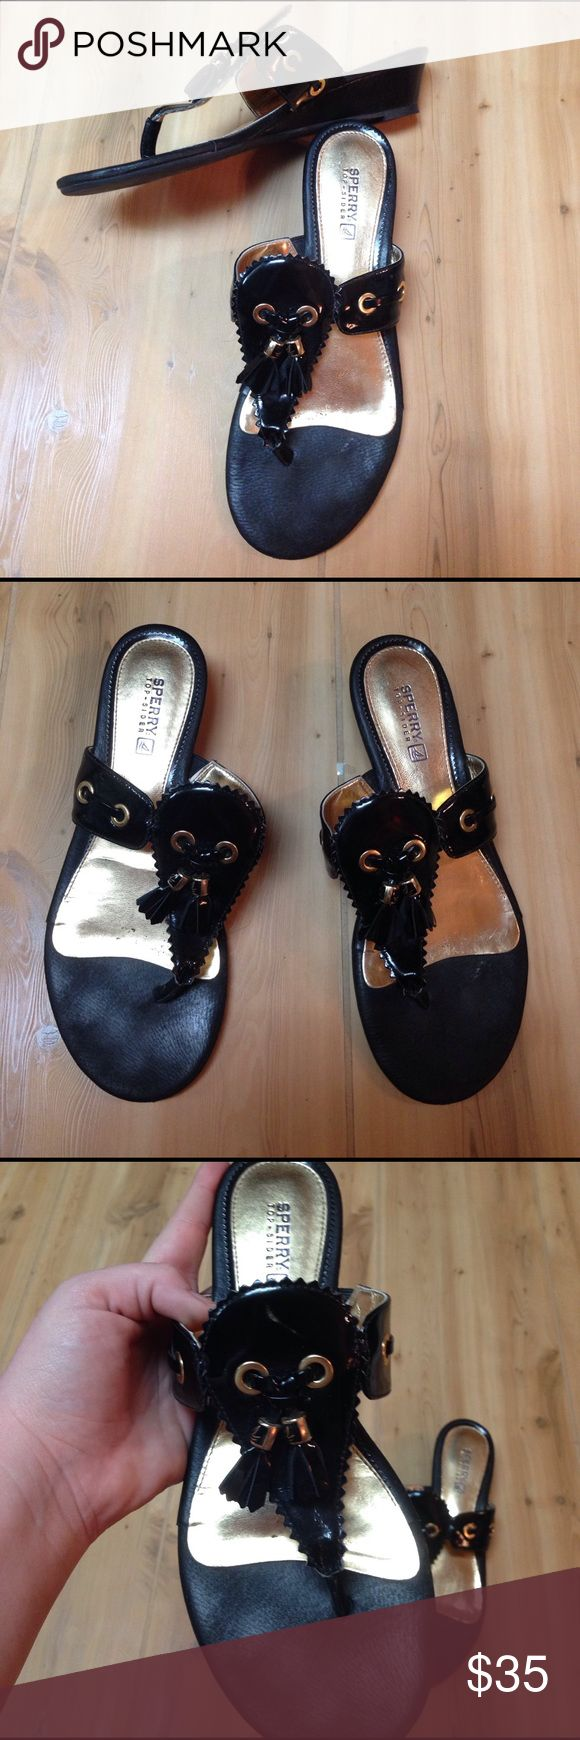 Sperry Sandals Black patent leather 7.5 M sperry sandals great used condition please view photos and ask questions if you have them Sperry Top-Sider Shoes Sandals